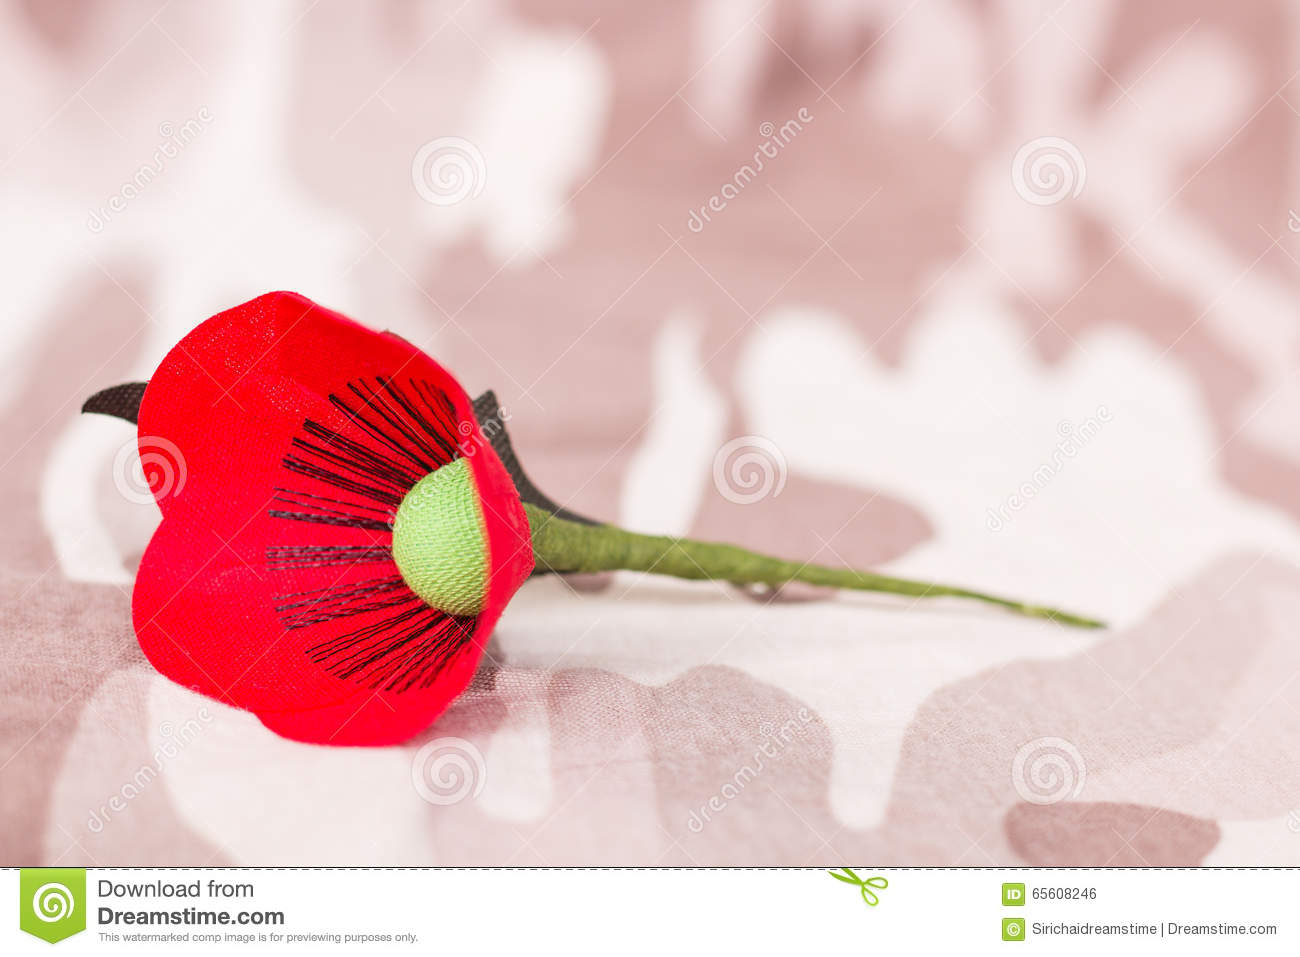 Red Poppy Is A Symbol Of Thailand Veterans Day Stock Photo Image